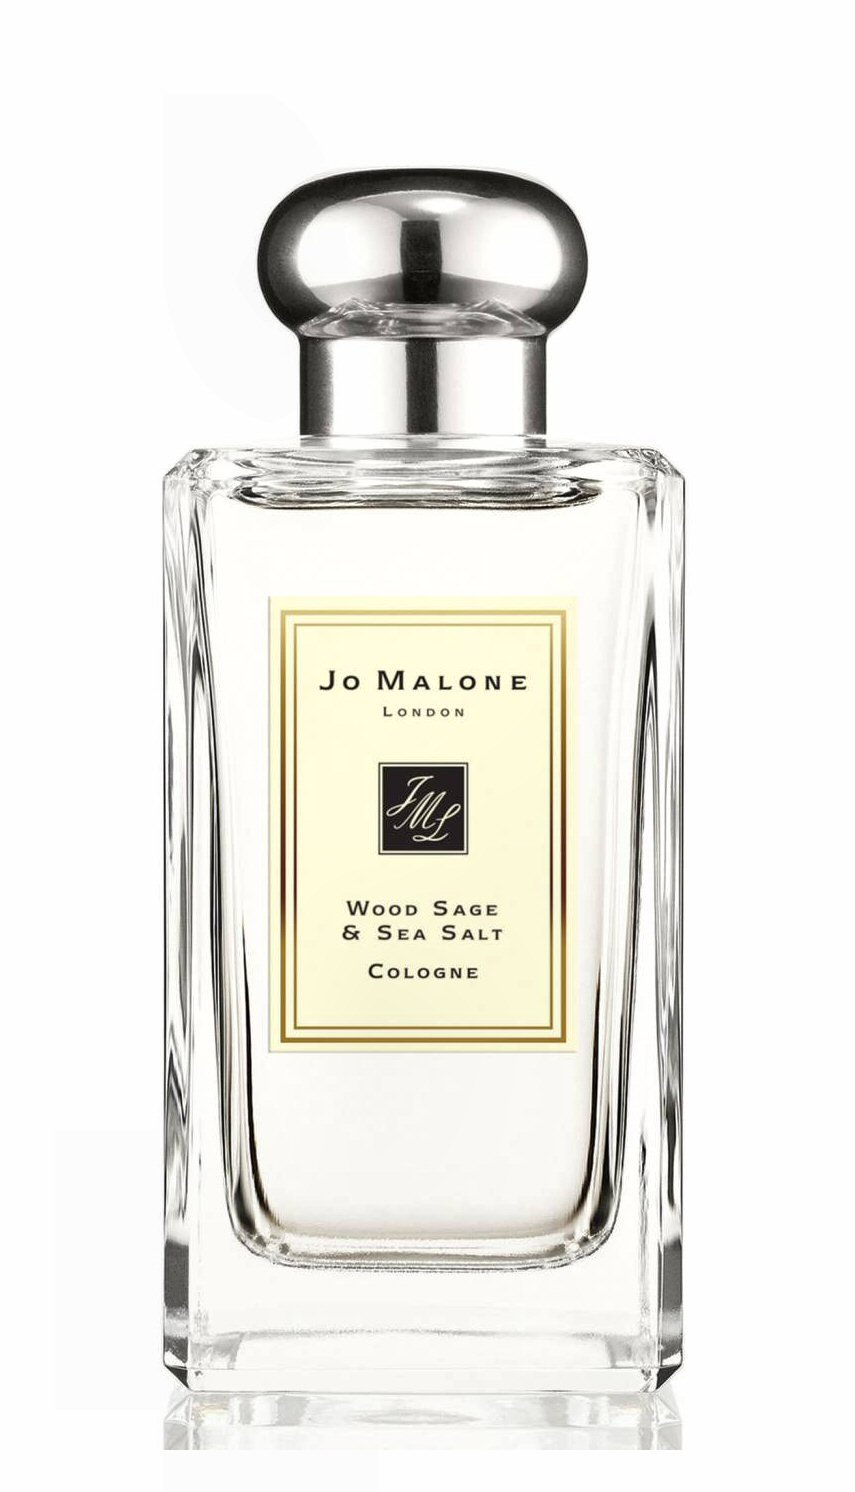 Brand New Jo Malone London Wood Sage & Sea Salt Cologne 3.4 oz / 100 ml